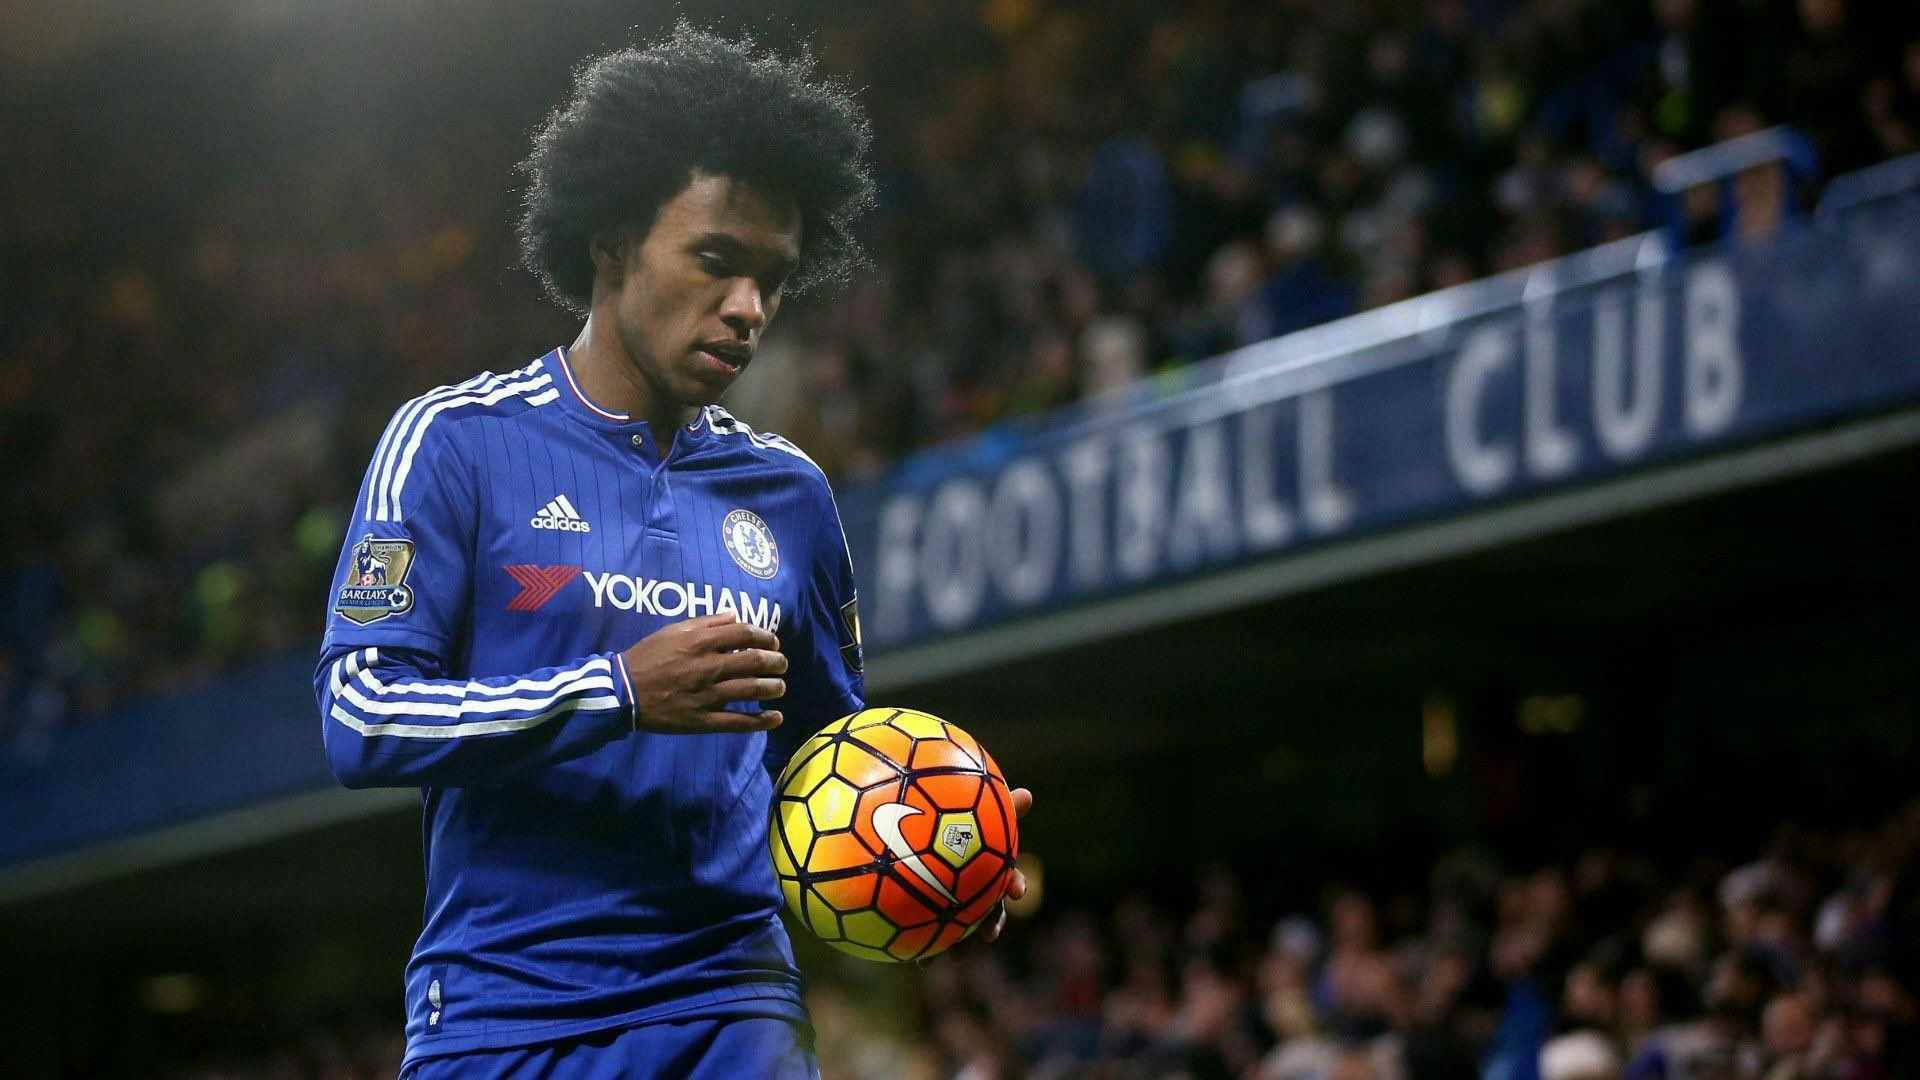 Willian to sign for Arsenal after rejecting offers from Chelsea and Man Utd